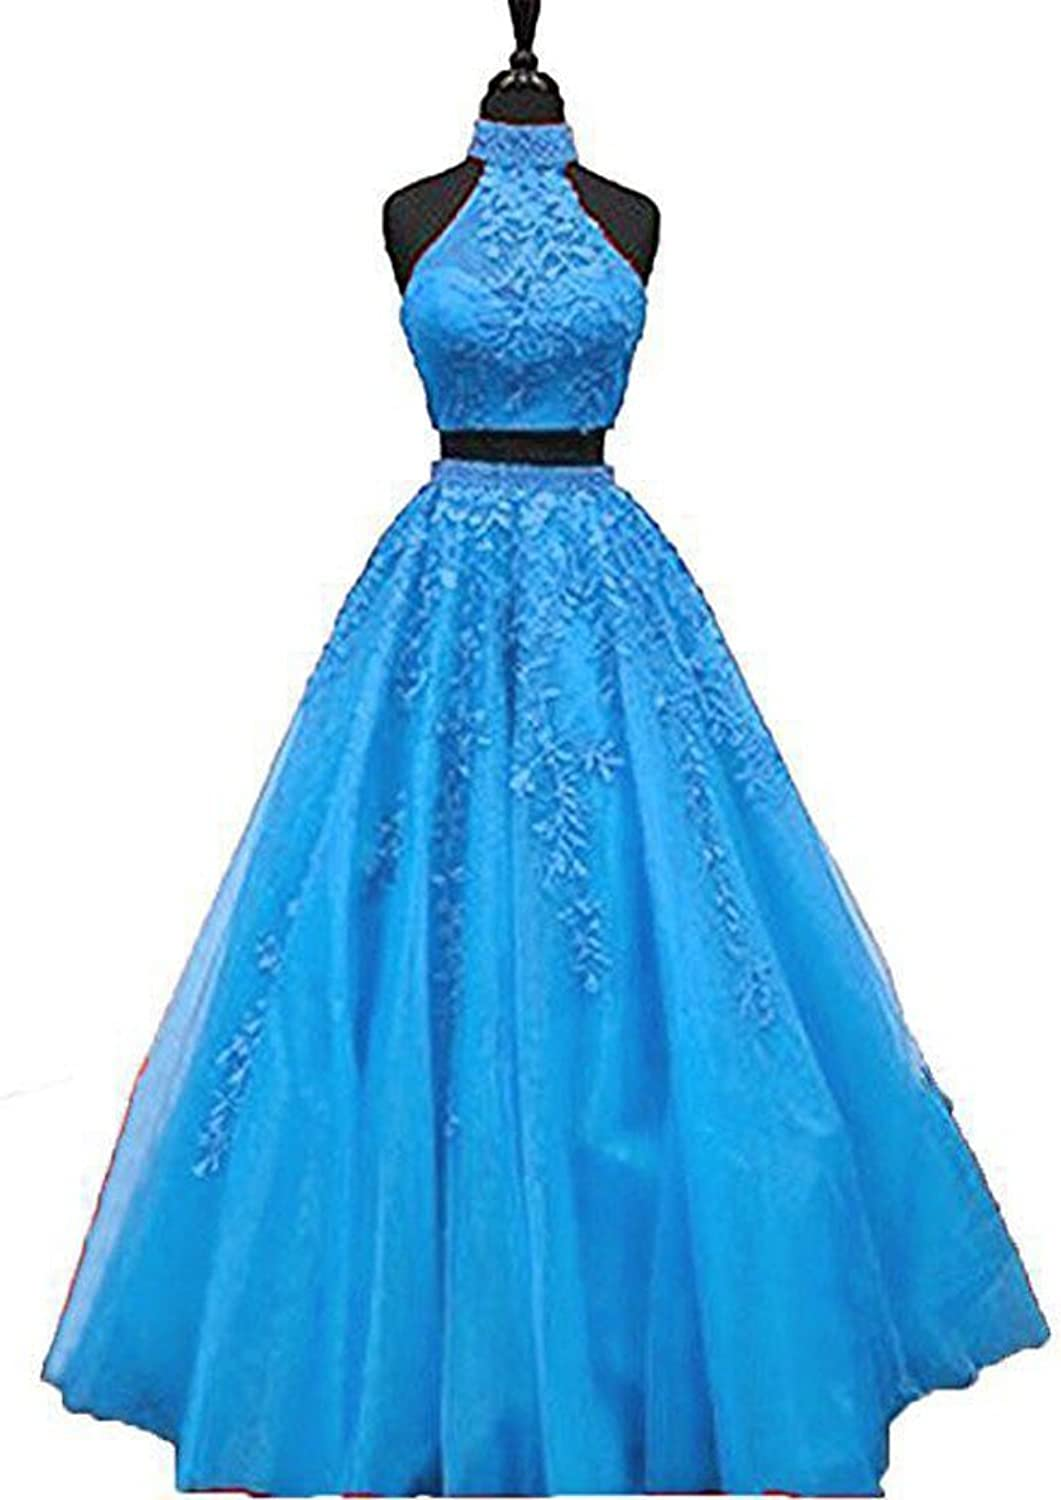 CCBubble 2 Piece Lace Prom Dresses 2018 O Neck Prom Evening Party Dress